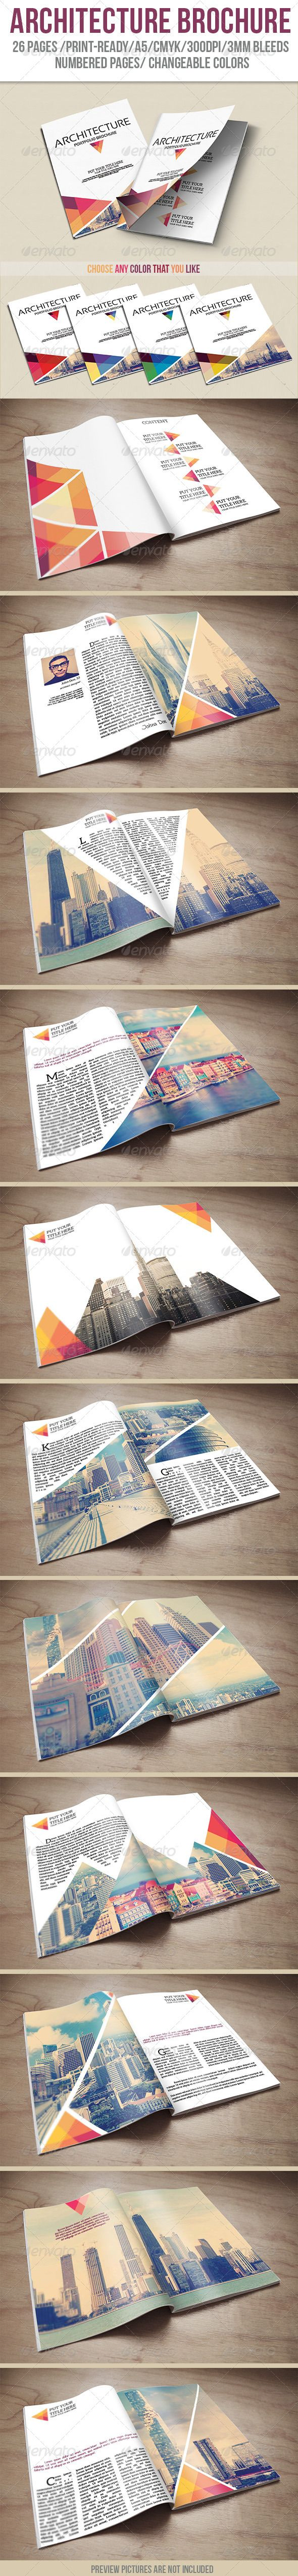 """Check out this great 26 pages #arch #print #brochure template """"Architecture Portfolio Brochure"""""""